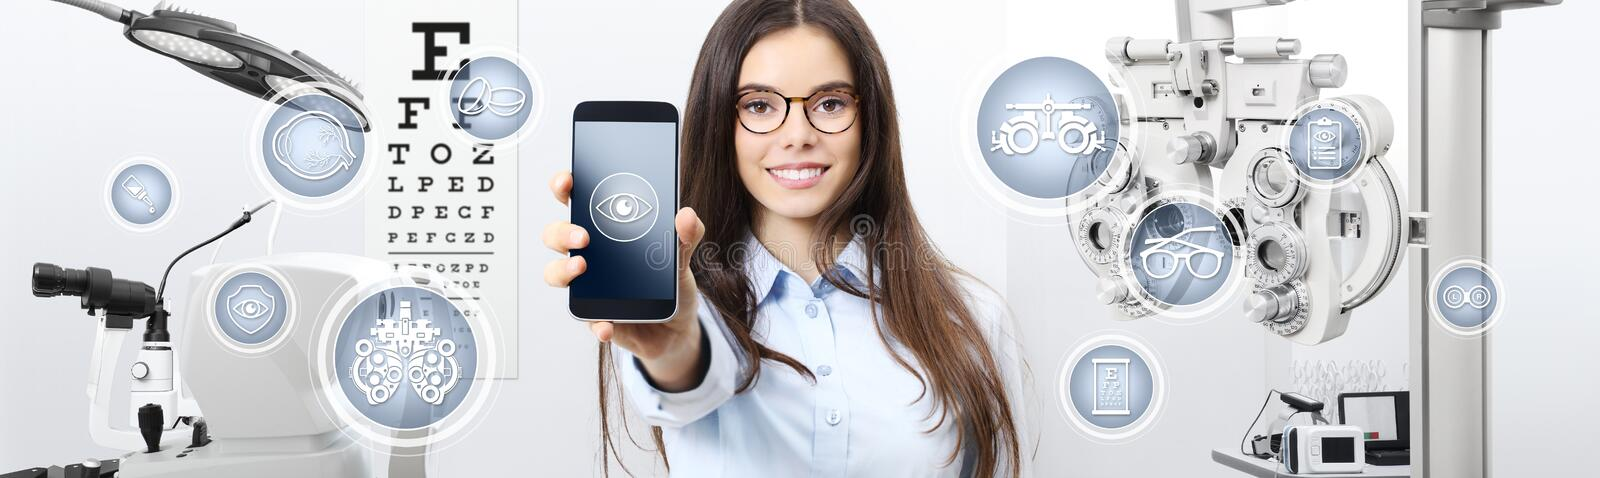 Concept of eye examination, smiling woman with spectacles showing mobile phone with icons in optometrist office, optician stock photography